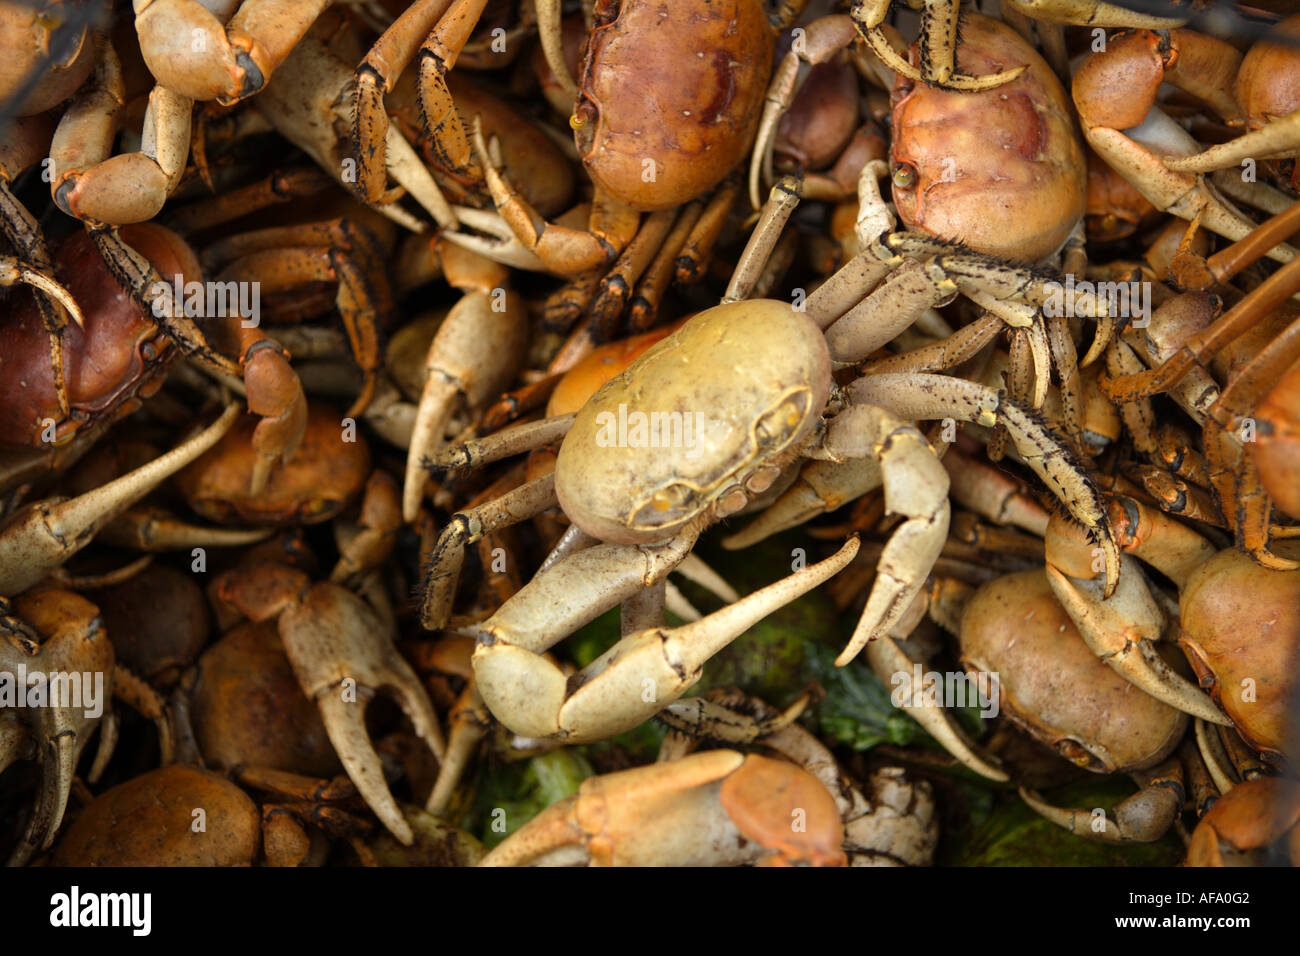 Live crab for sale at Potters Cay, Nassau, New Providence